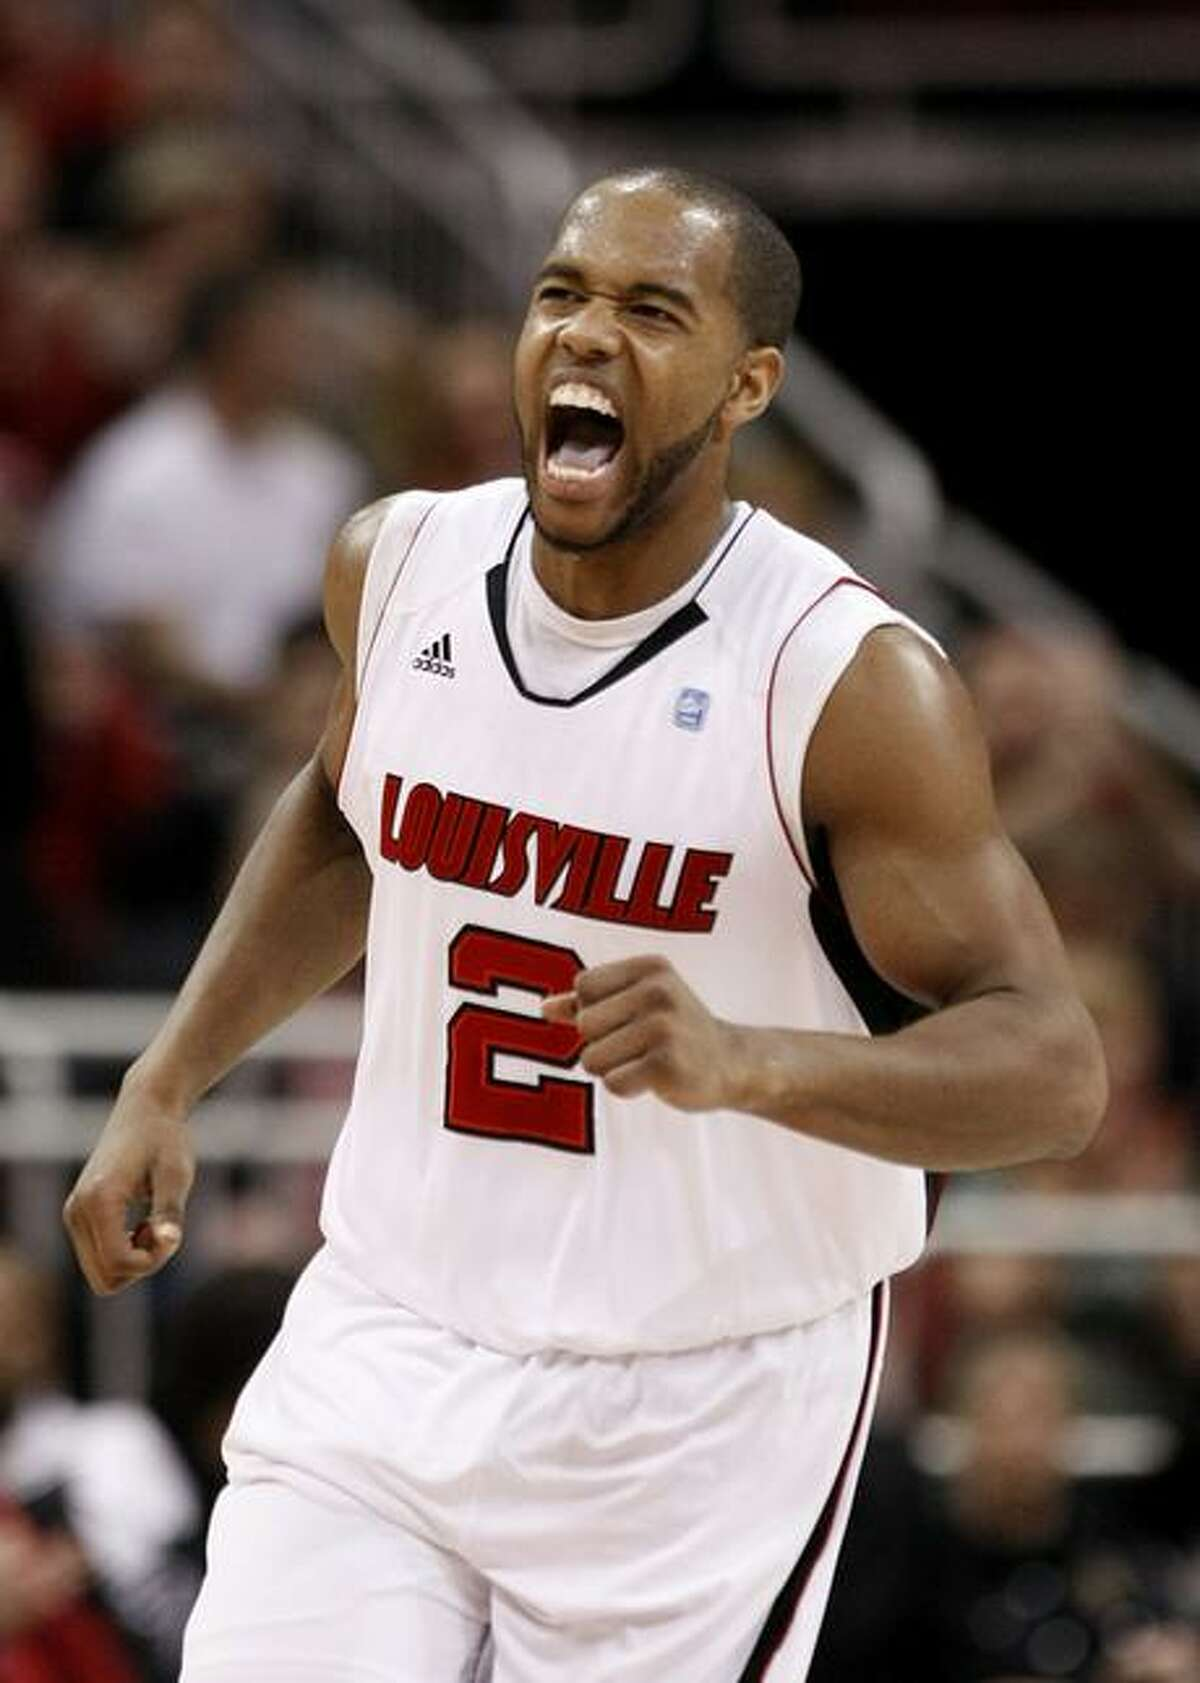 Louisville's Preston Knowles yells out after hitting a shot during the first half of an NCAA college basketball game against Connecticut, in Louisville, Ky., Friday, Feb. 18, 2011. (AP Photo/Ed Reinke)